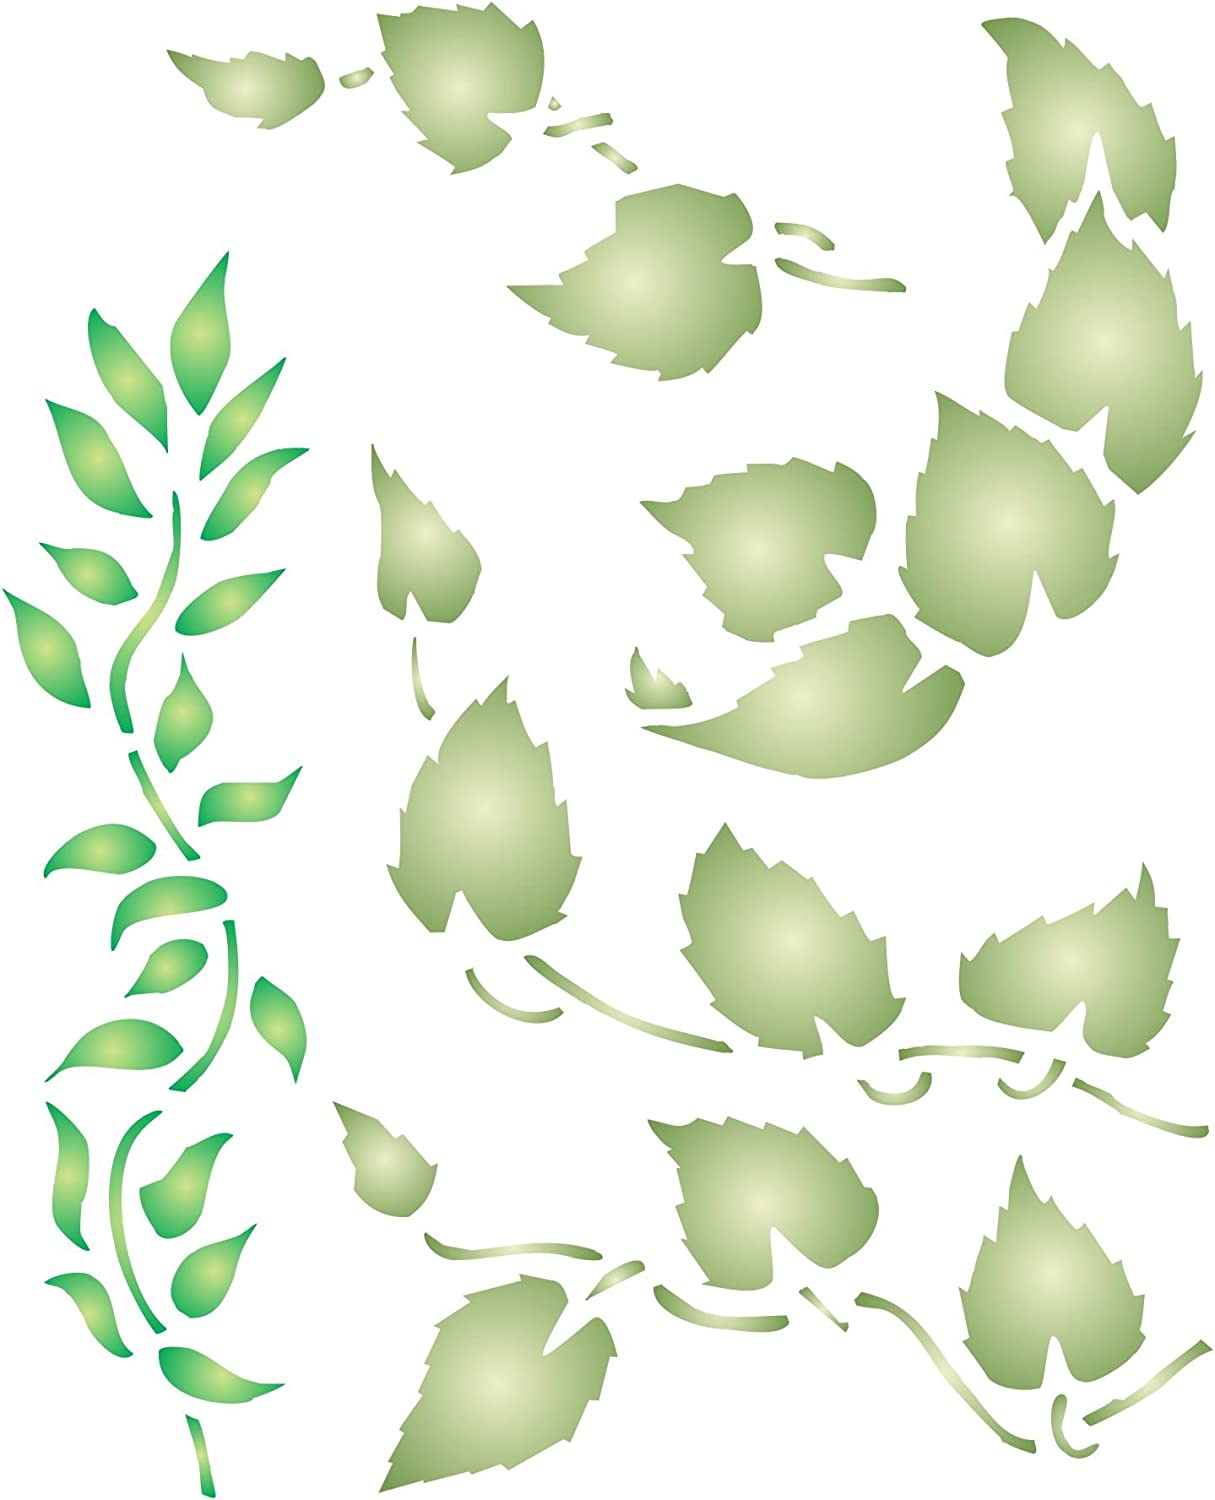 Leaf Stencil, 3.25 x 4 inch (S) - Leaves Vines Stencils for Painting Cards